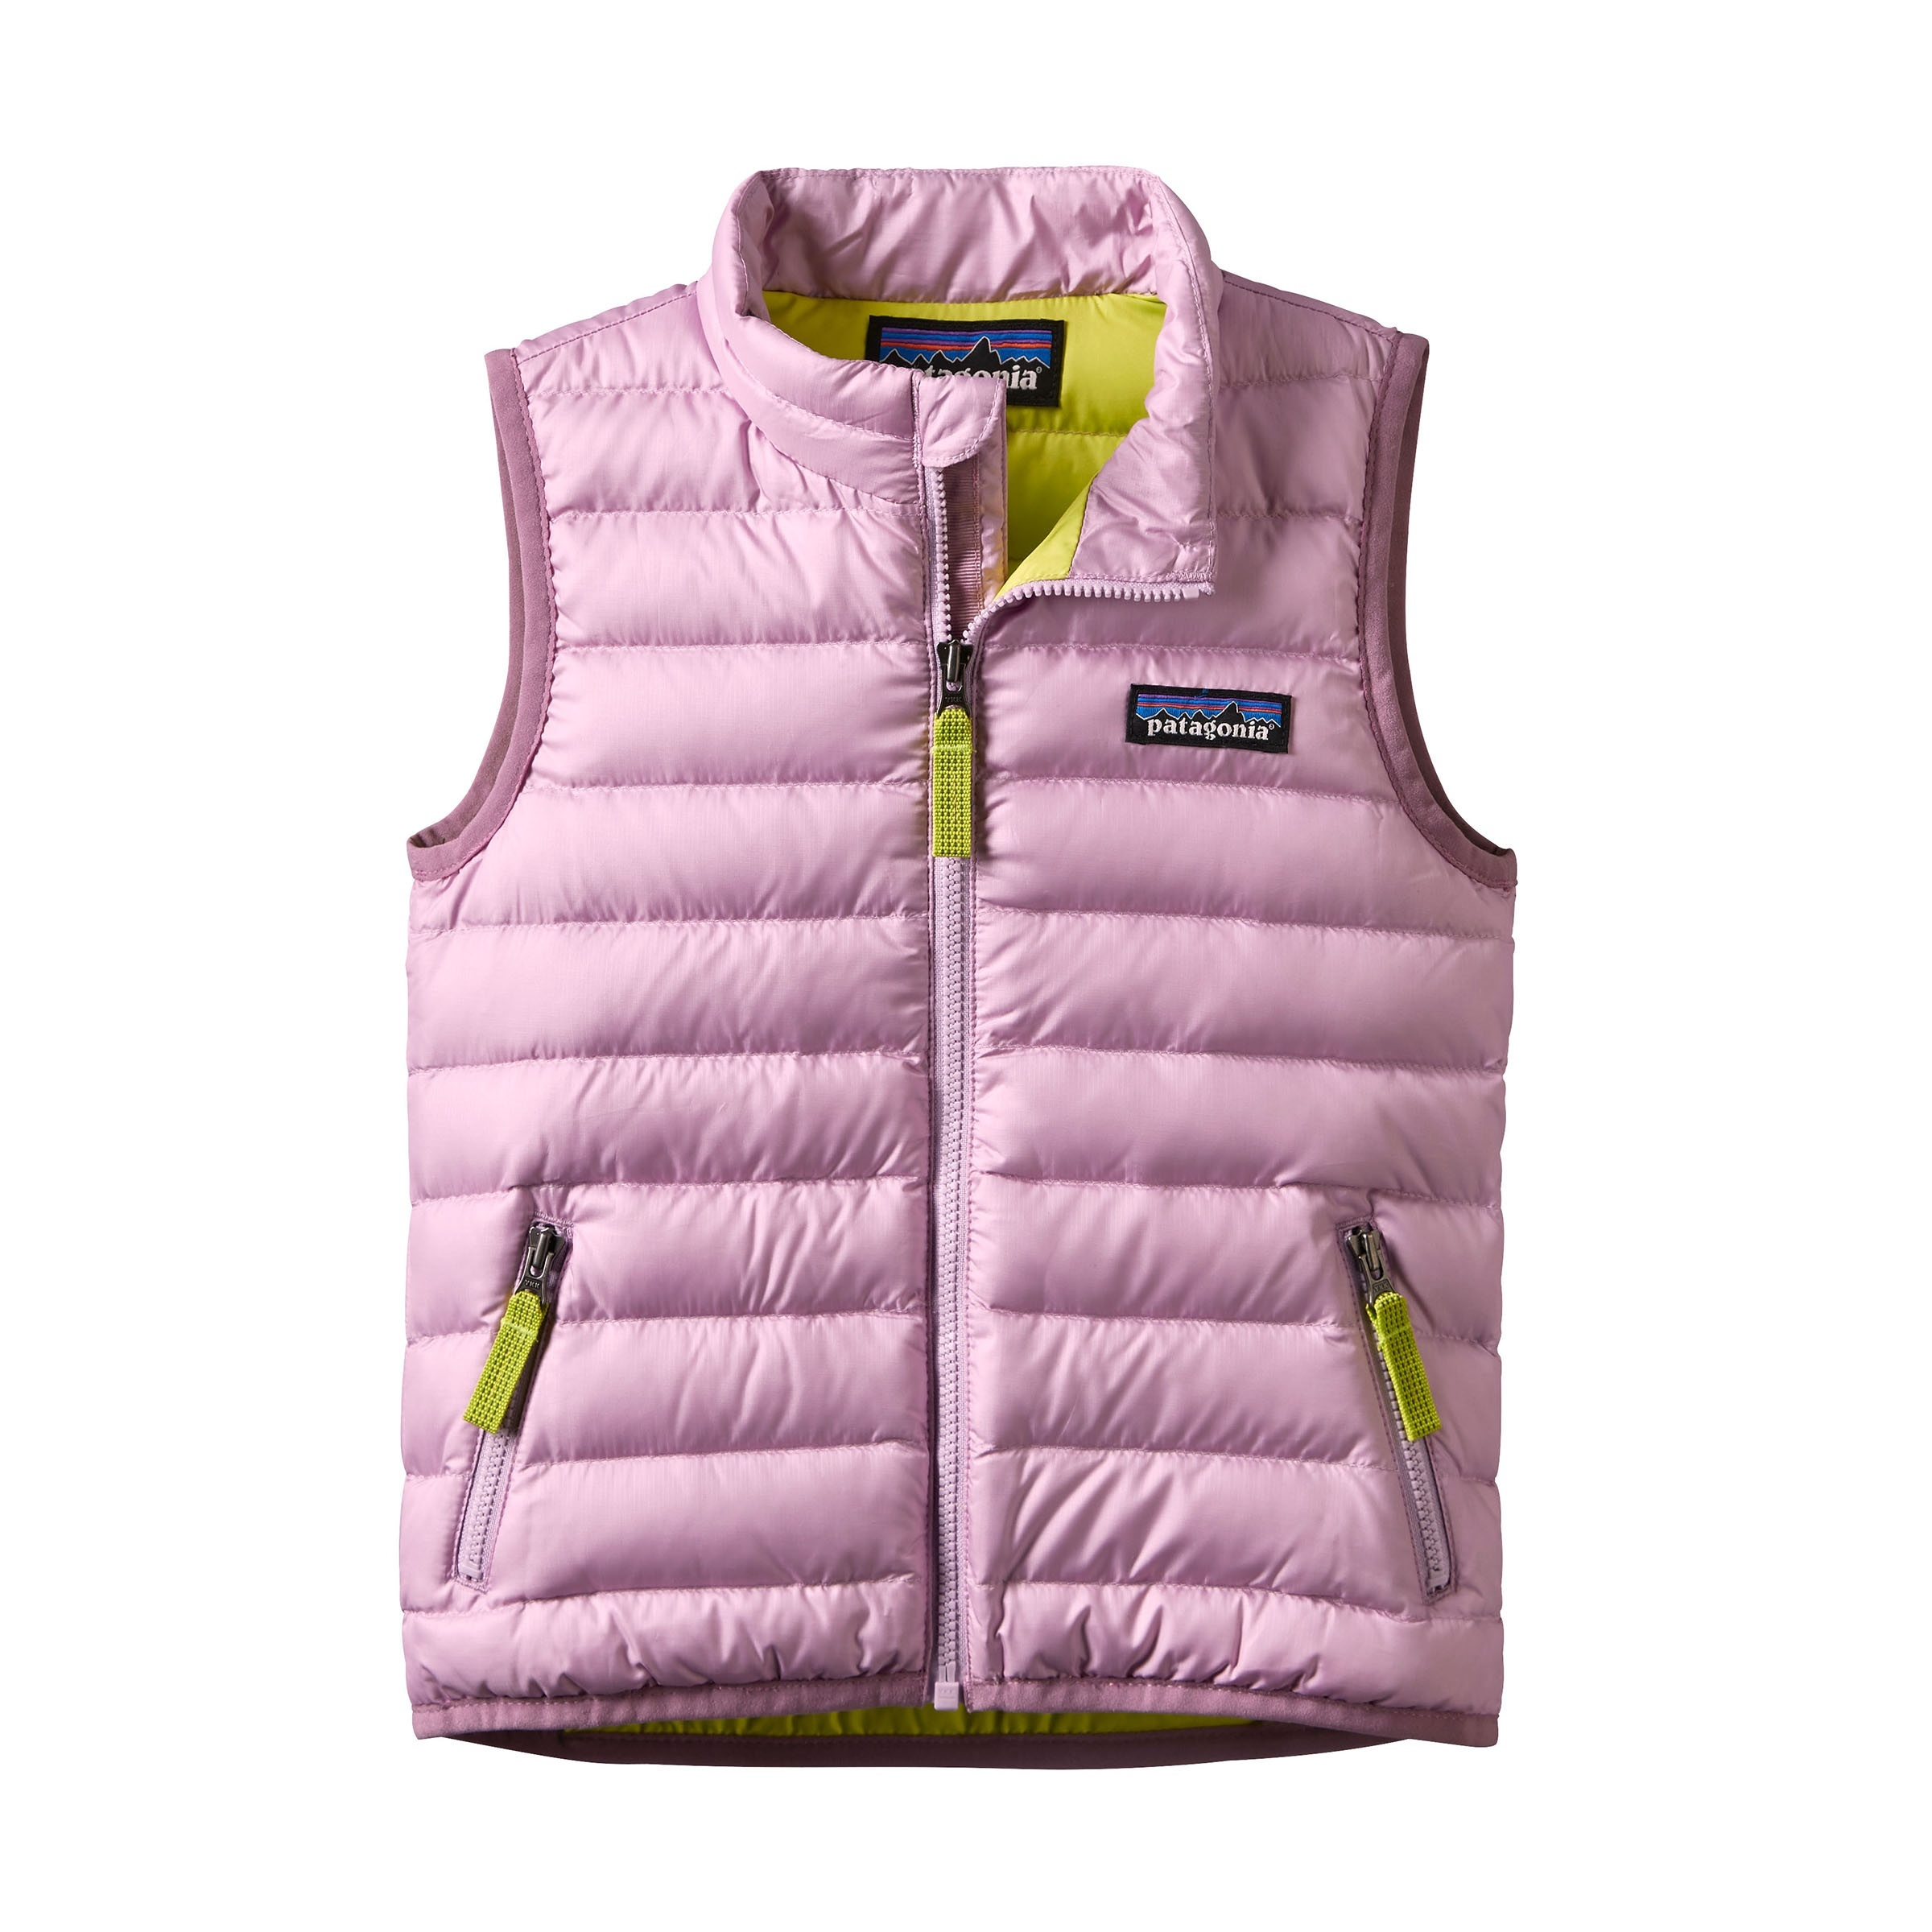 Sleeveless Sweater Vests. Clothing. Women. Womens Sweaters. Sleeveless Sweater Vests. Showing 48 of results that match your query. We focused on the bestselling products customers like you want most in categories like Baby, Clothing, Electronics and Health & Beauty. Marketplace items.